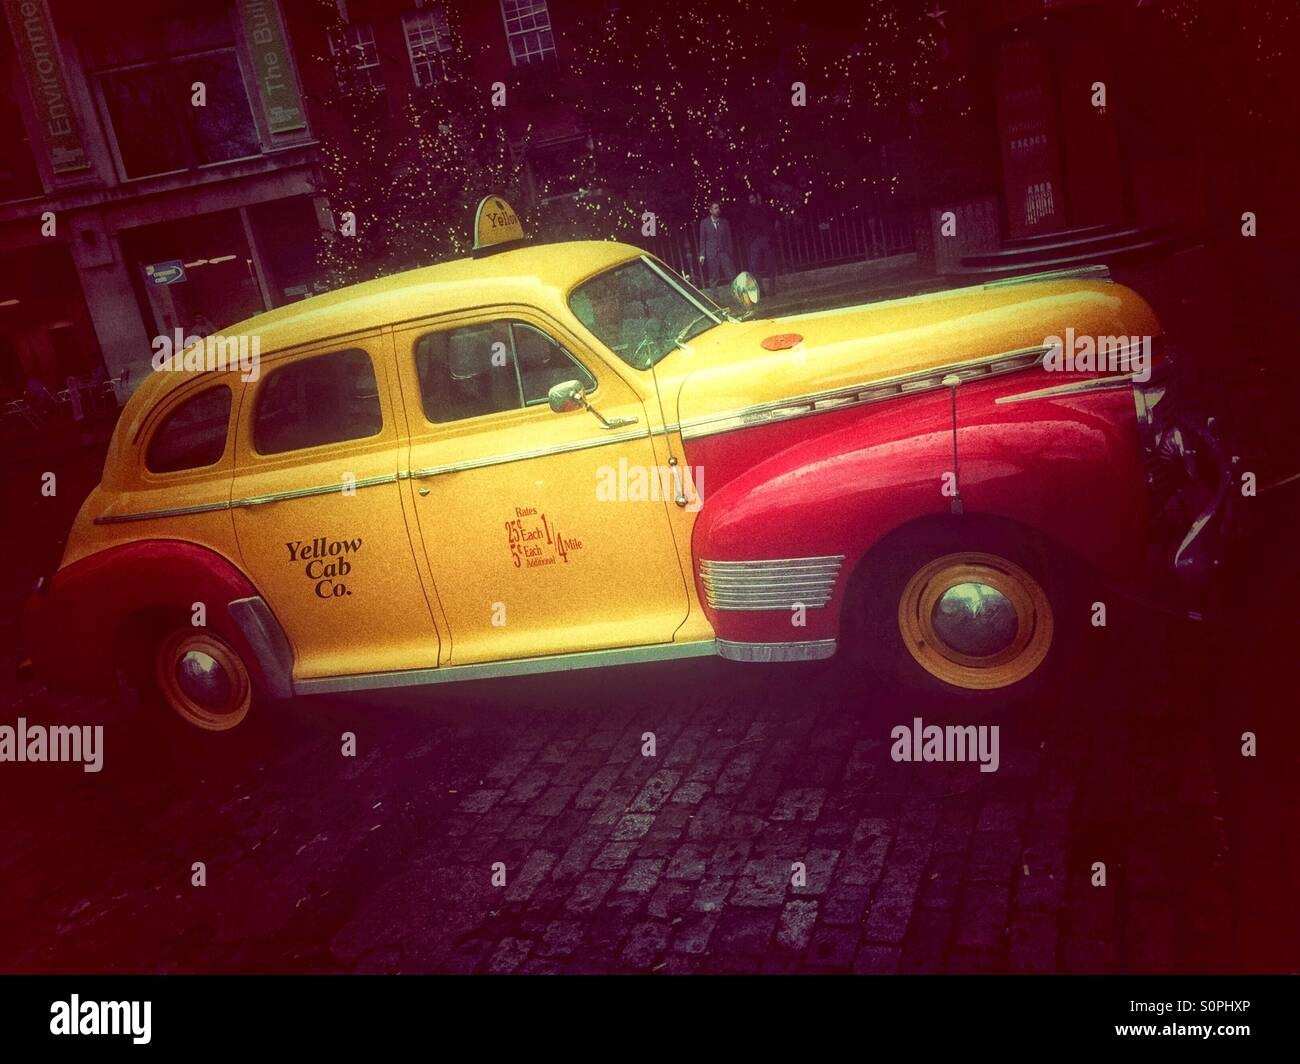 Brightly Coloured Car Stock Photos & Brightly Coloured Car Stock ...